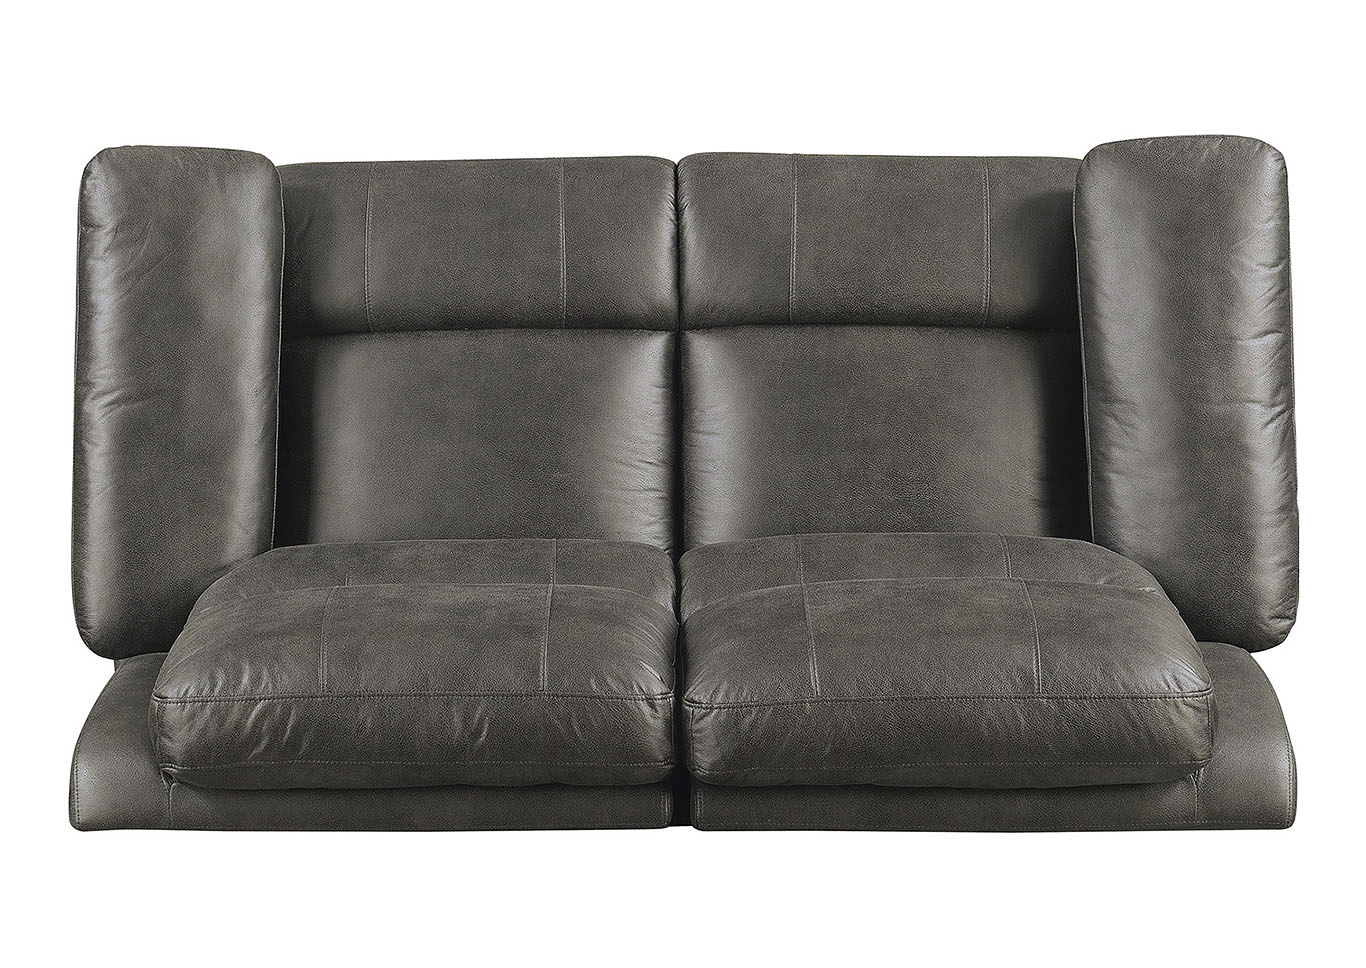 Julia Dark Gray Power Motion Loveseat,Taba Home Furnishings